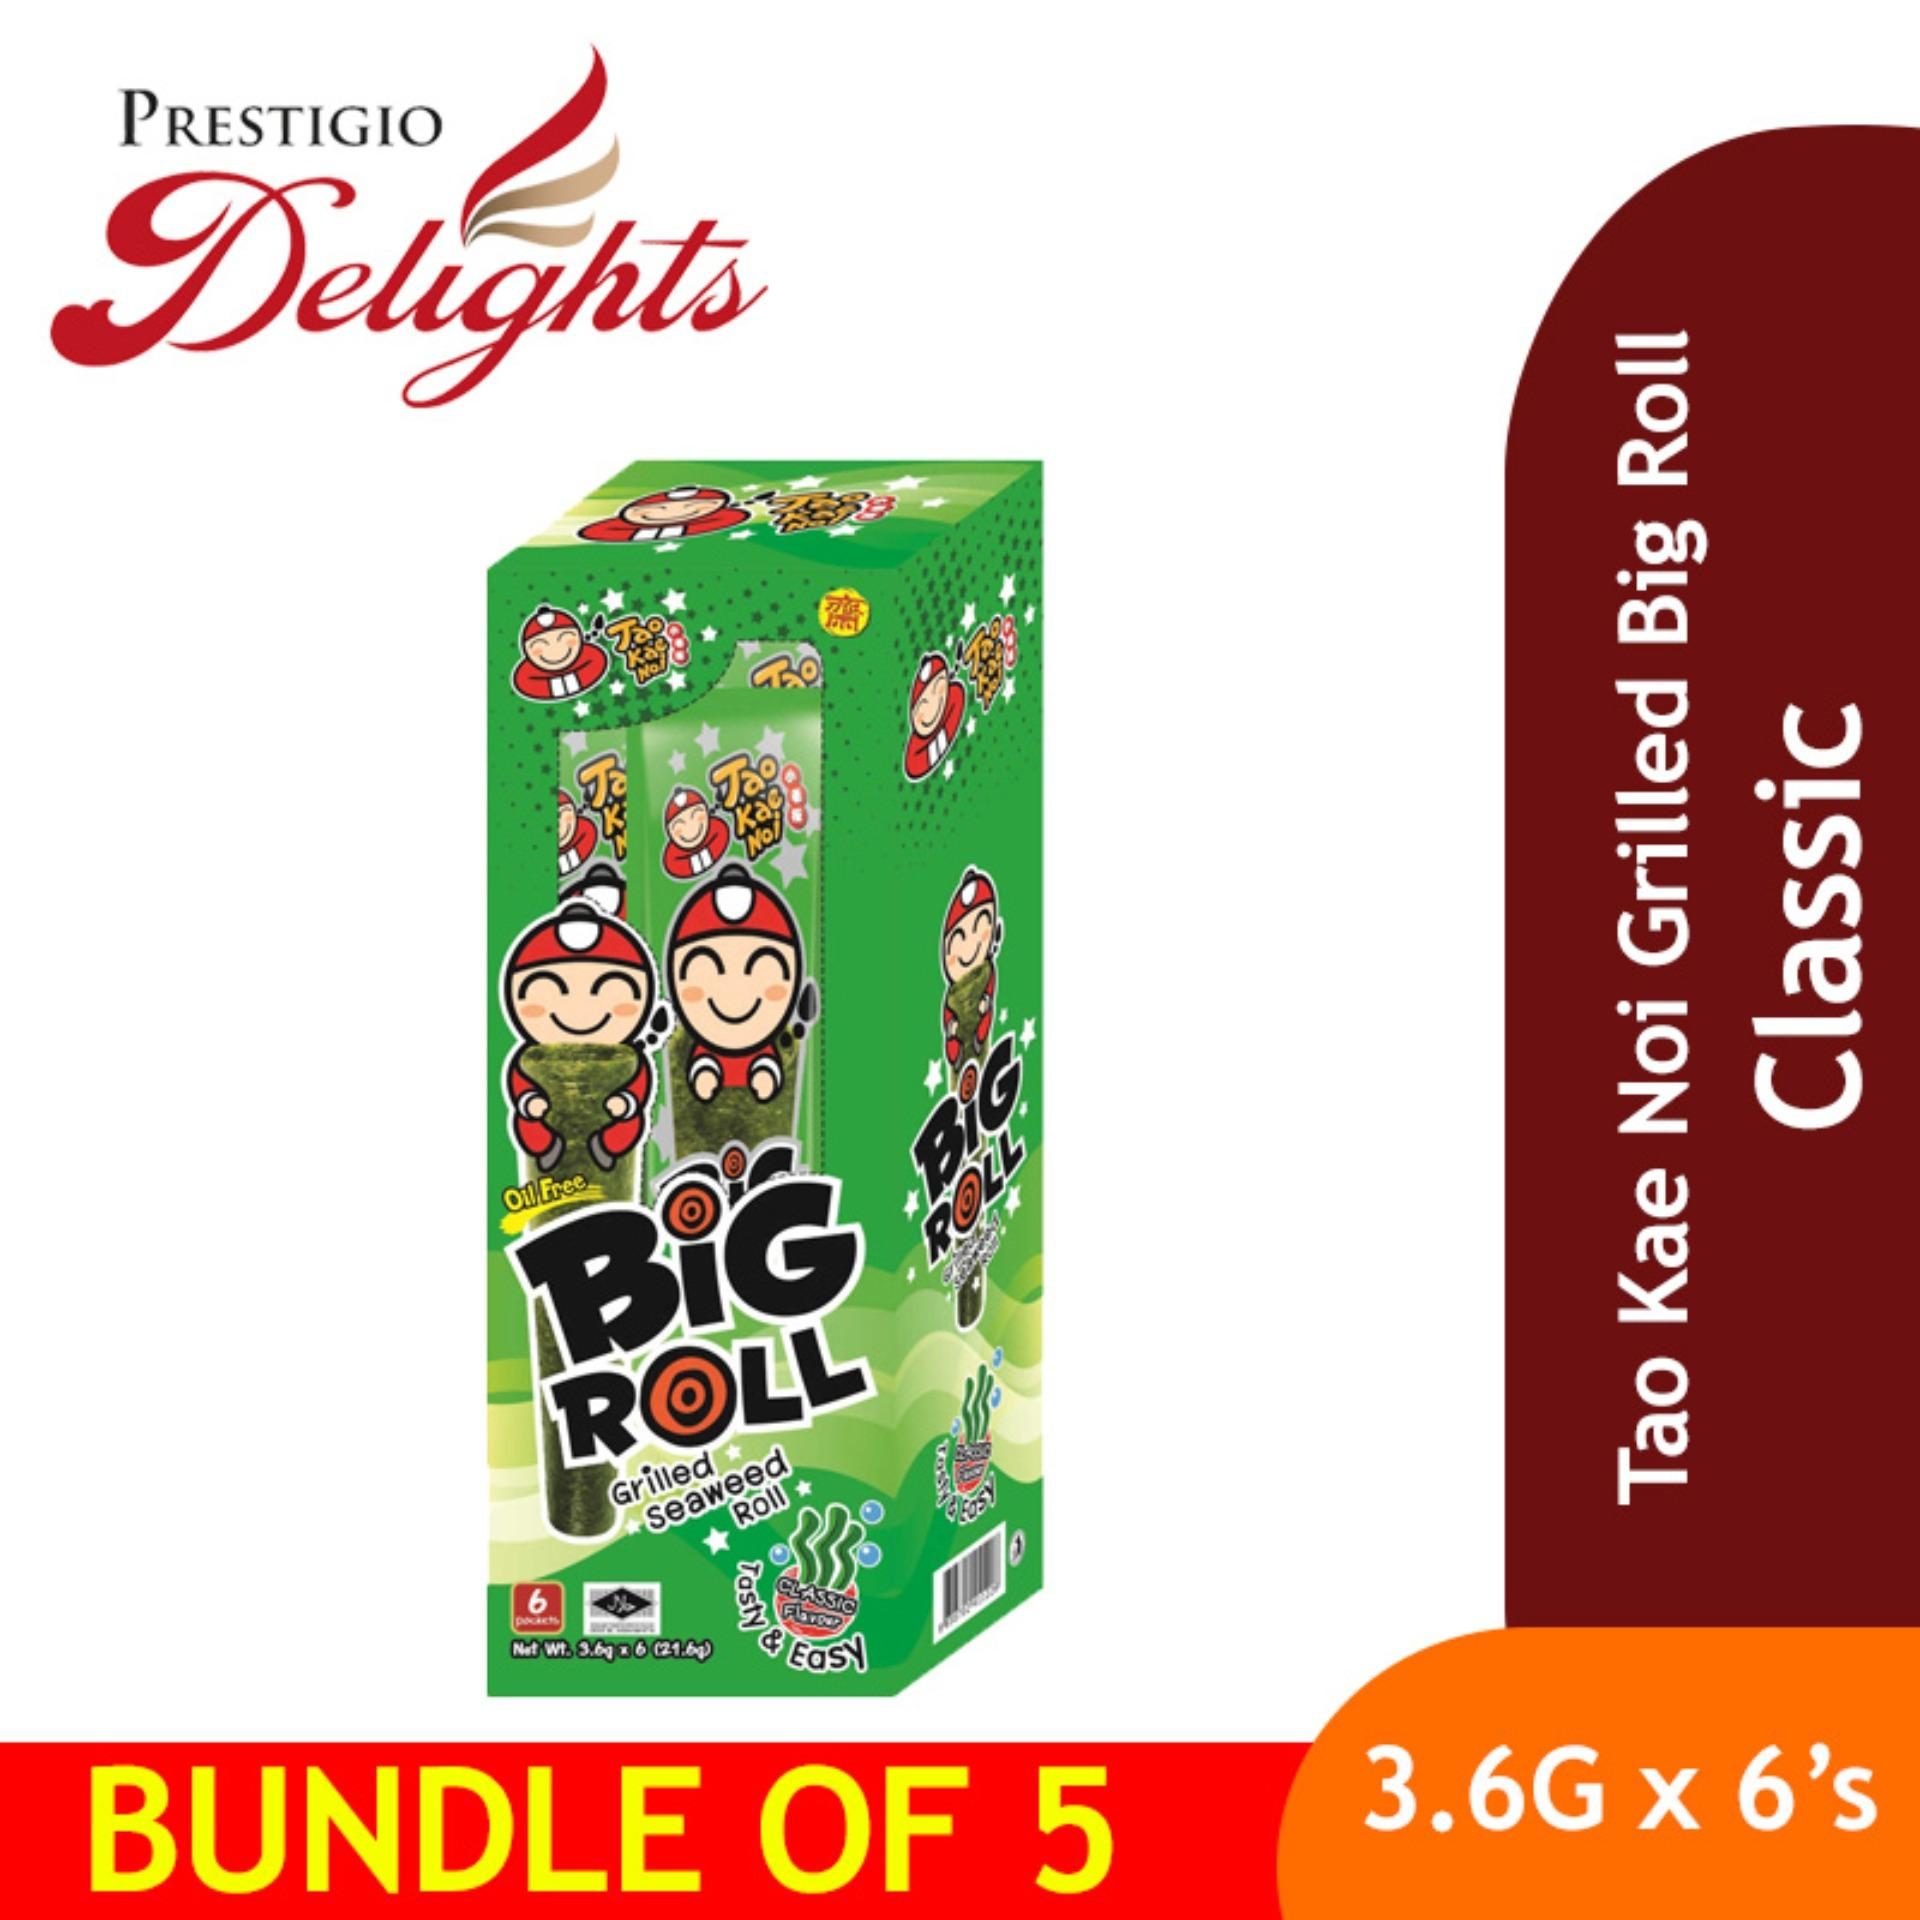 Tao Kae Noi Grilled Big Roll Classic 3.6g Bundle Of 5 By Prestigio Delights.